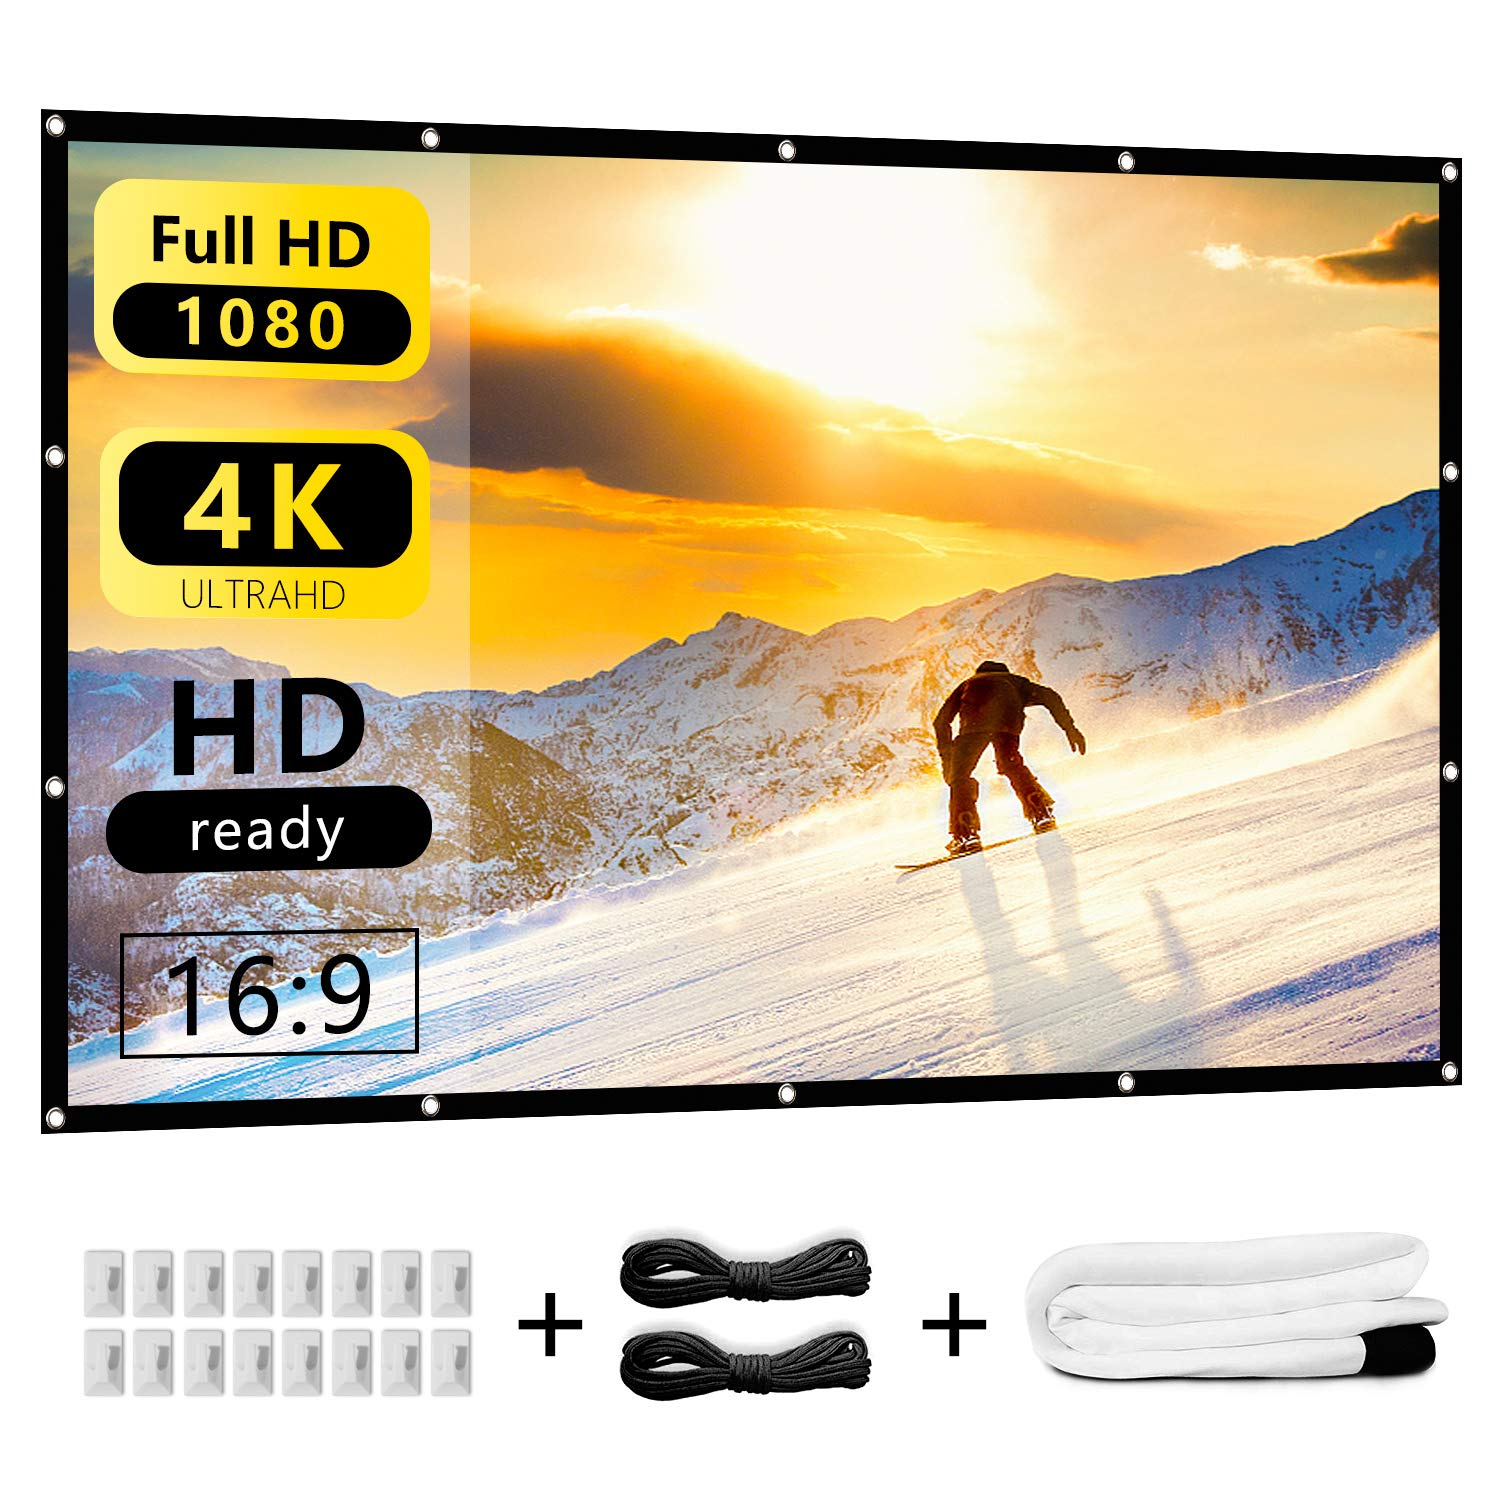 Indoor Outdoor Projector Screen 120 inch 16:9 HD Projection Foldable Anti-Crease Portable Movie Screens Backyard Home Theater, Support Double Sided Projection Nell Zimi